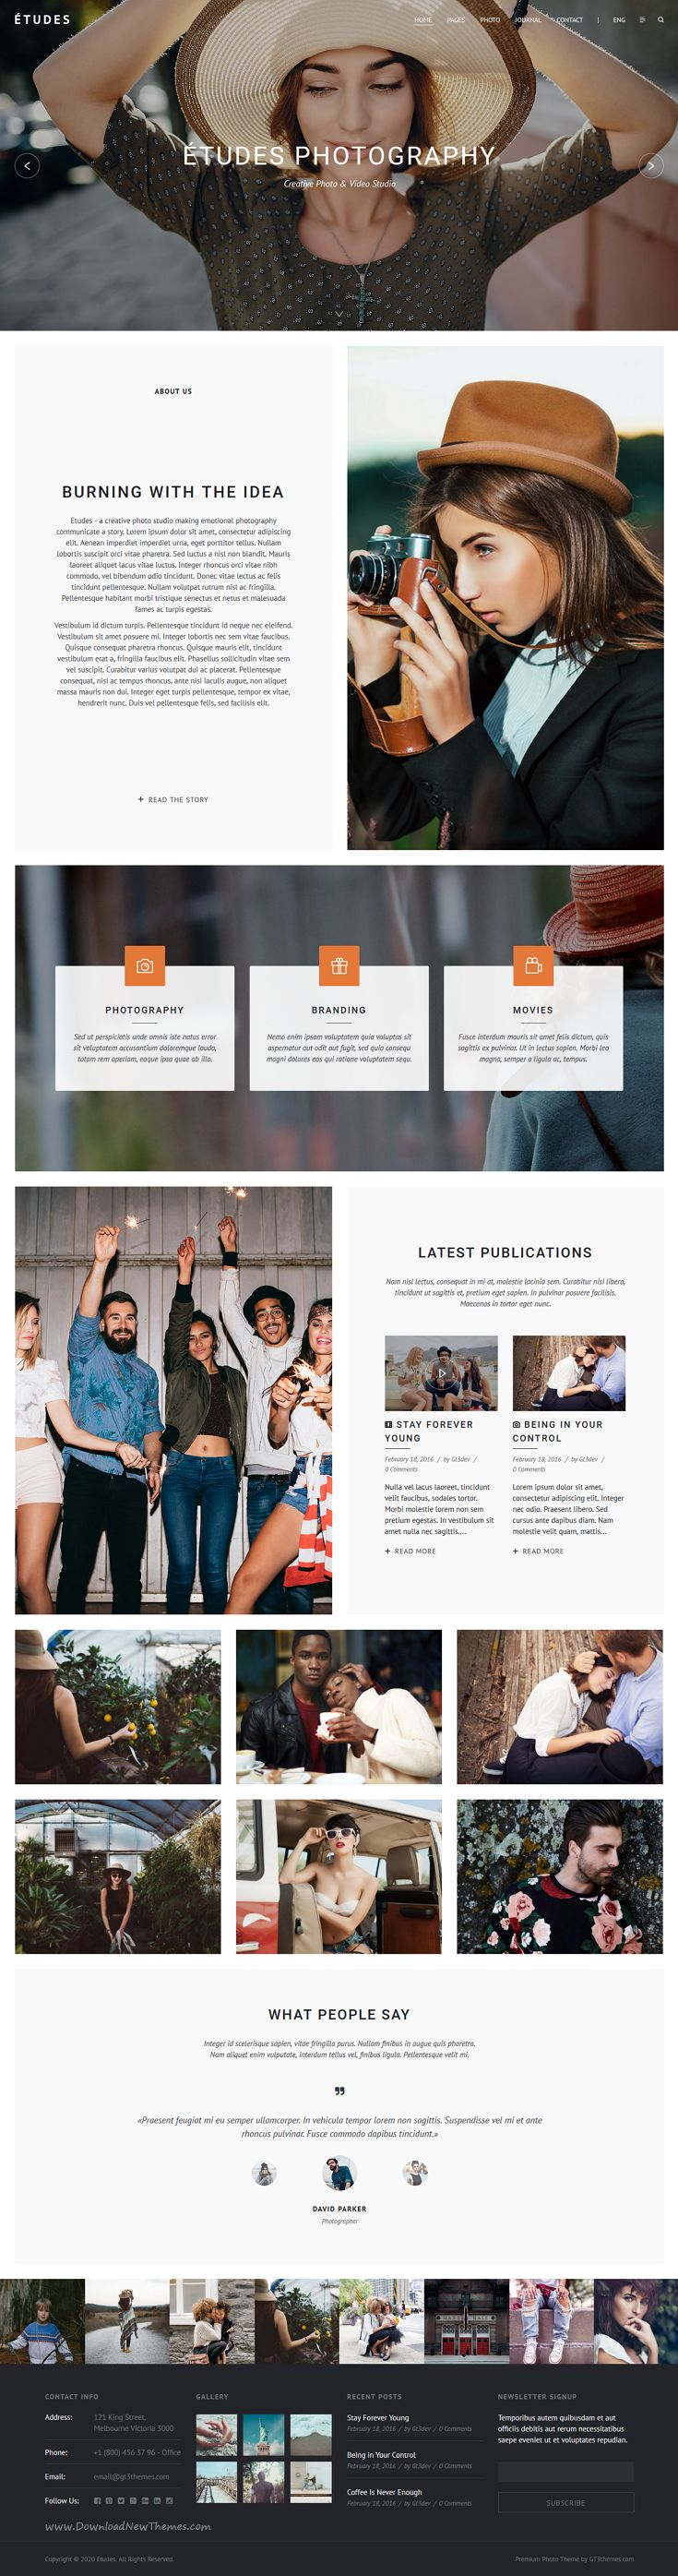 Etudes is carefully crafted 5 in 1 WordPress theme for #creative #photography #website. Download Now!